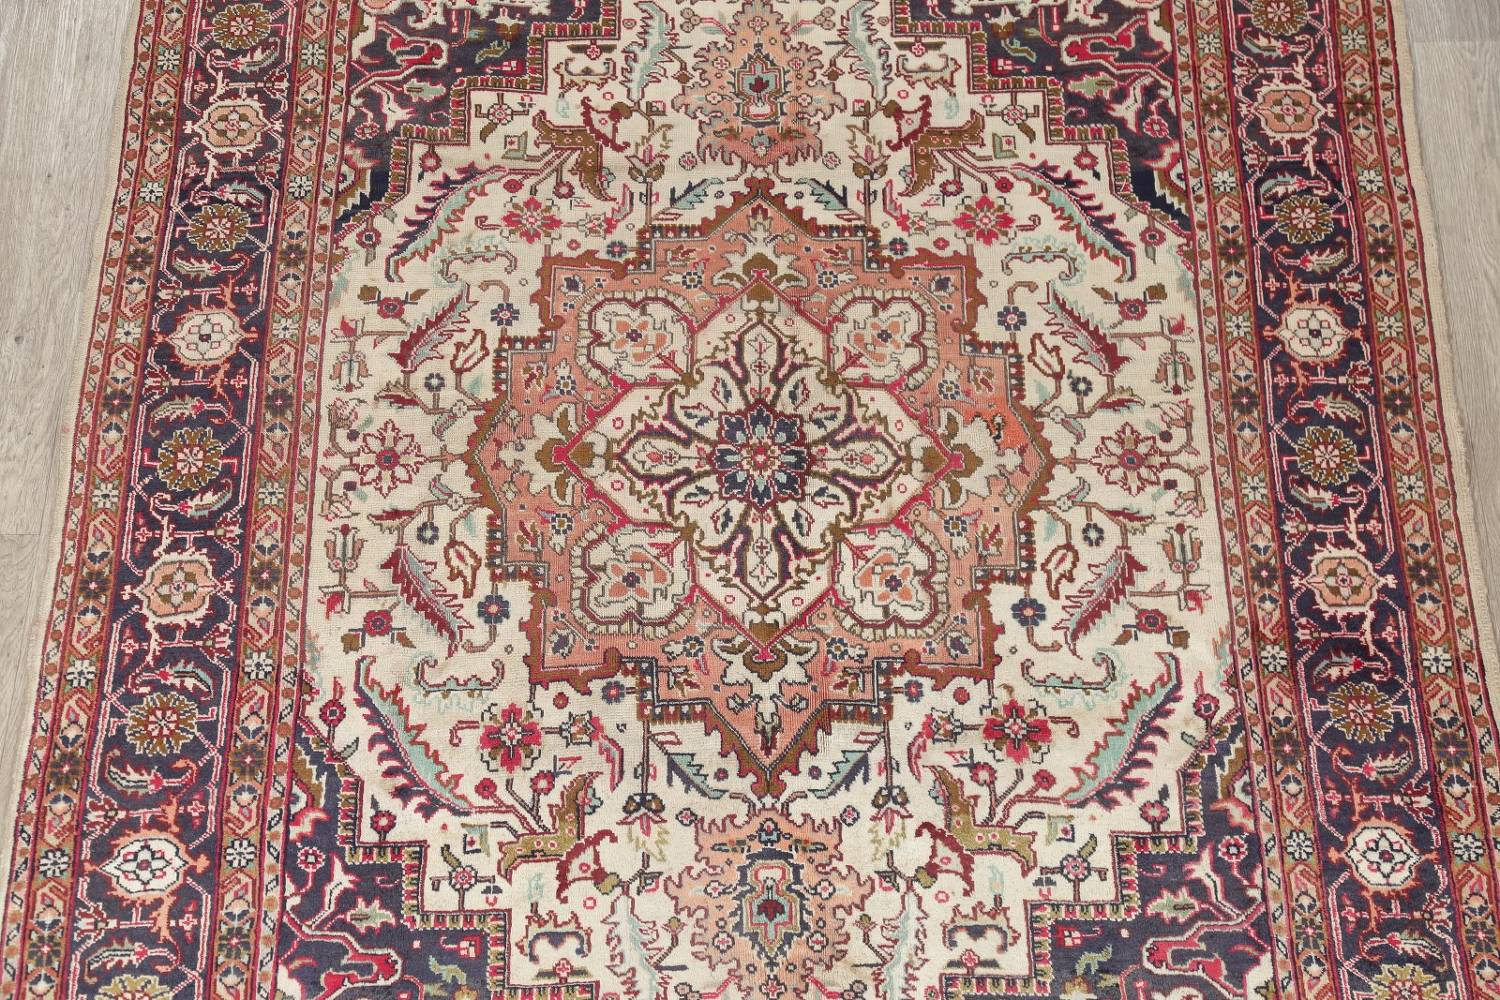 One-of-a-Kind Antique Heriz Serapi Persian Hand-Knotted 7x9 Wool Area Rug image 3